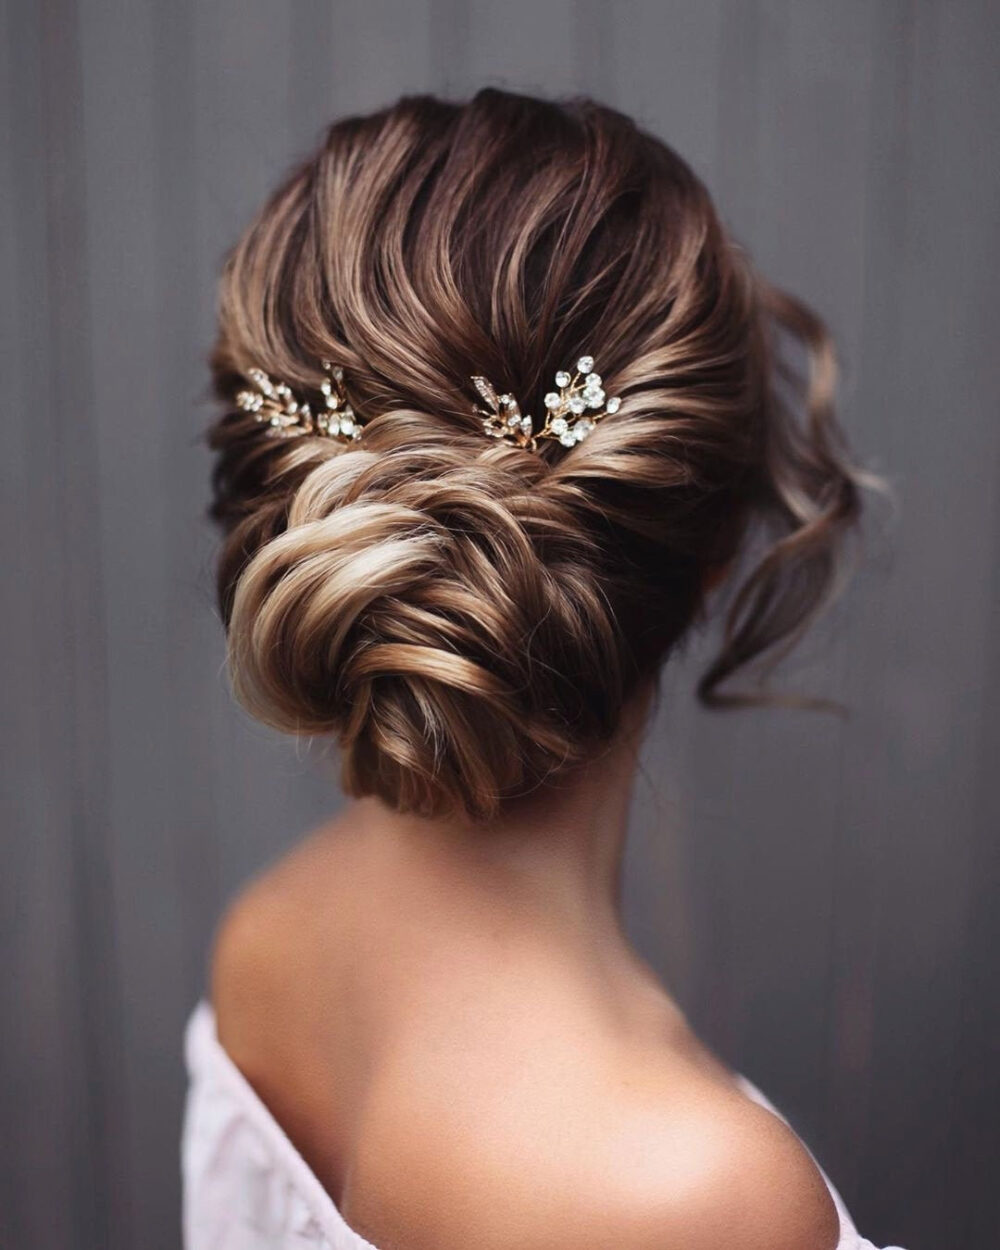 Bridesmaid Hair Pins Rose Gold Bridal Hairpiece Wedding Accessories Silver Comb Hairpin